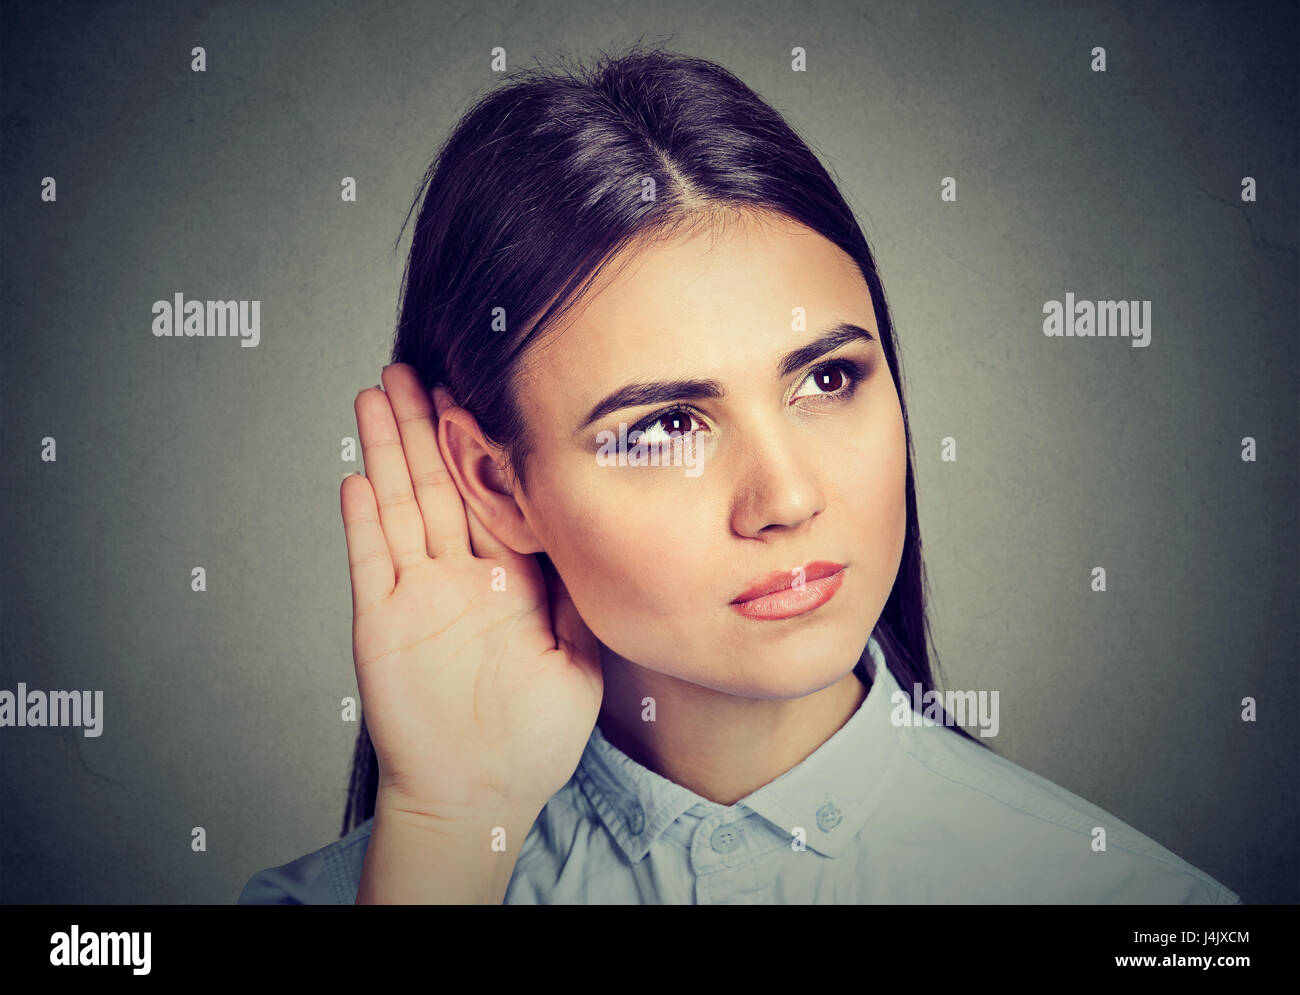 Woman with hand to ear gesture listening carefully - Stock Image